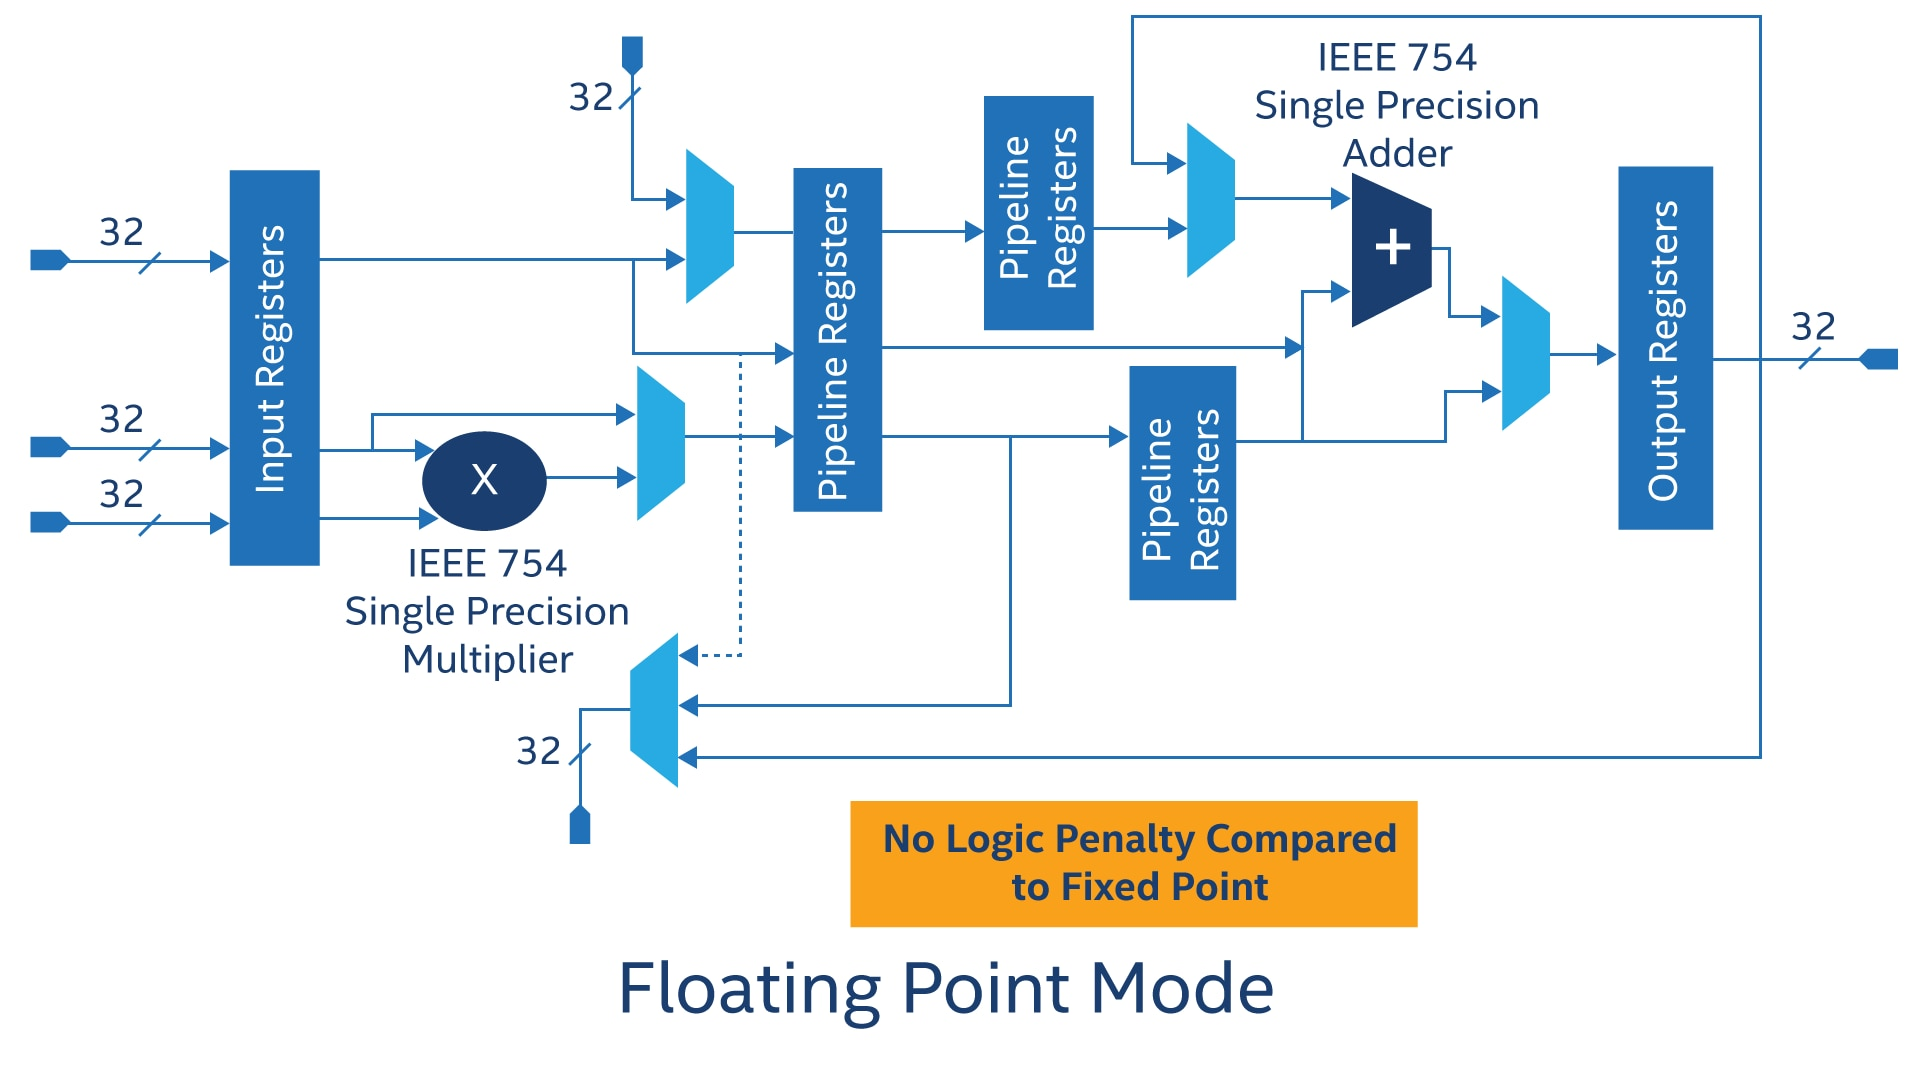 Intel Arria 10 Fpgas Features Frequency Doubler And Crystal Oscillator Circuit Diagram Tradeofic View Full Size